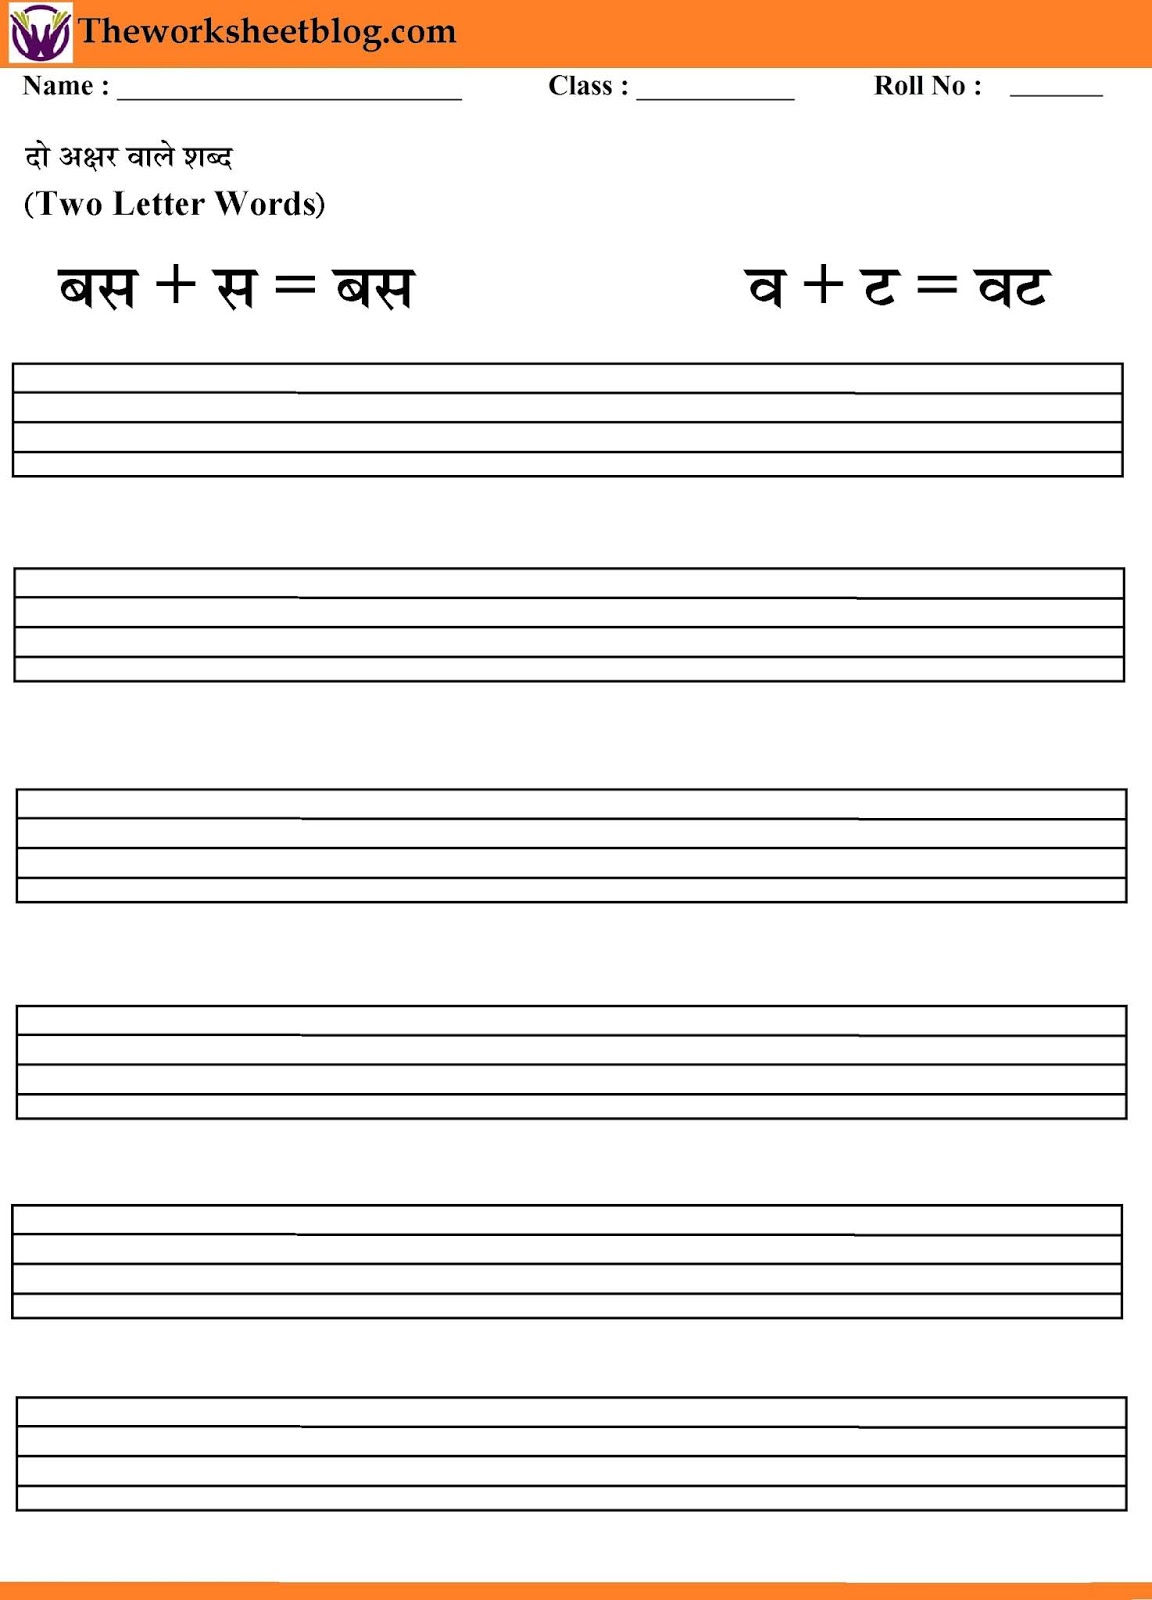 Two Letter Words Worksheet In Hindi